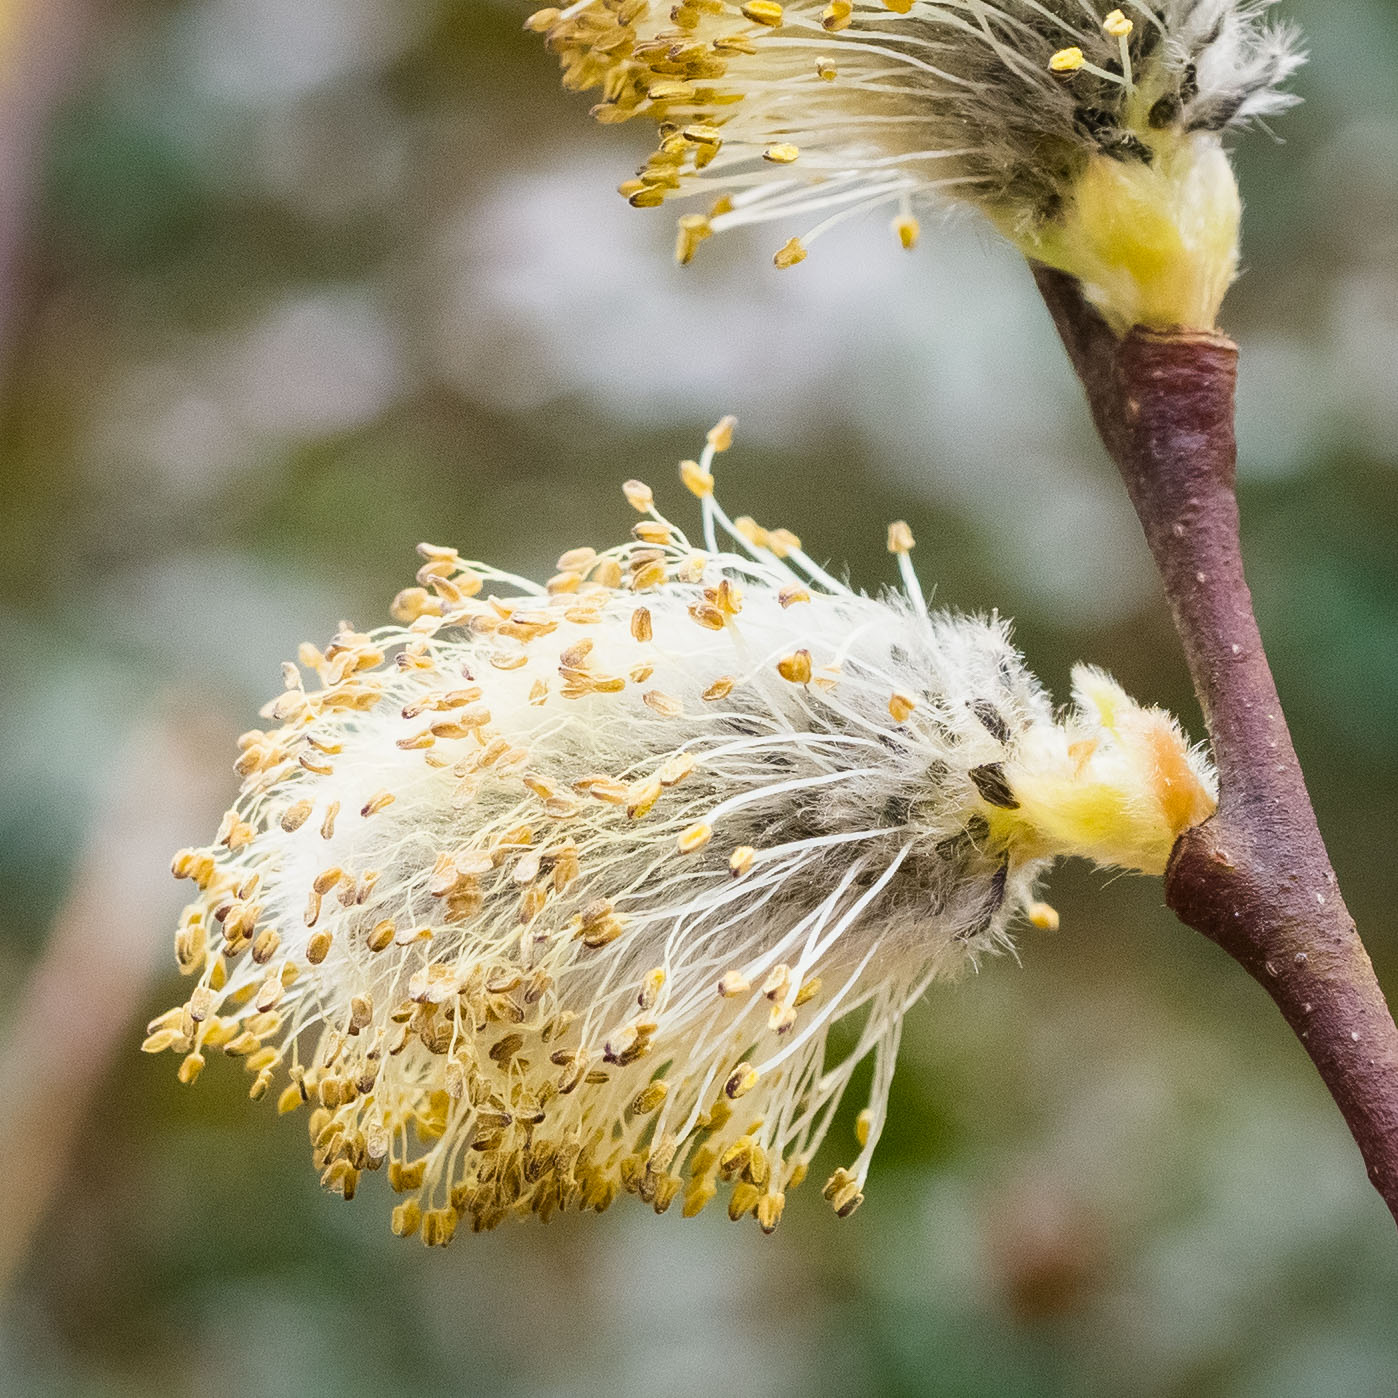 Today: Pussy willow catkins, mid-March